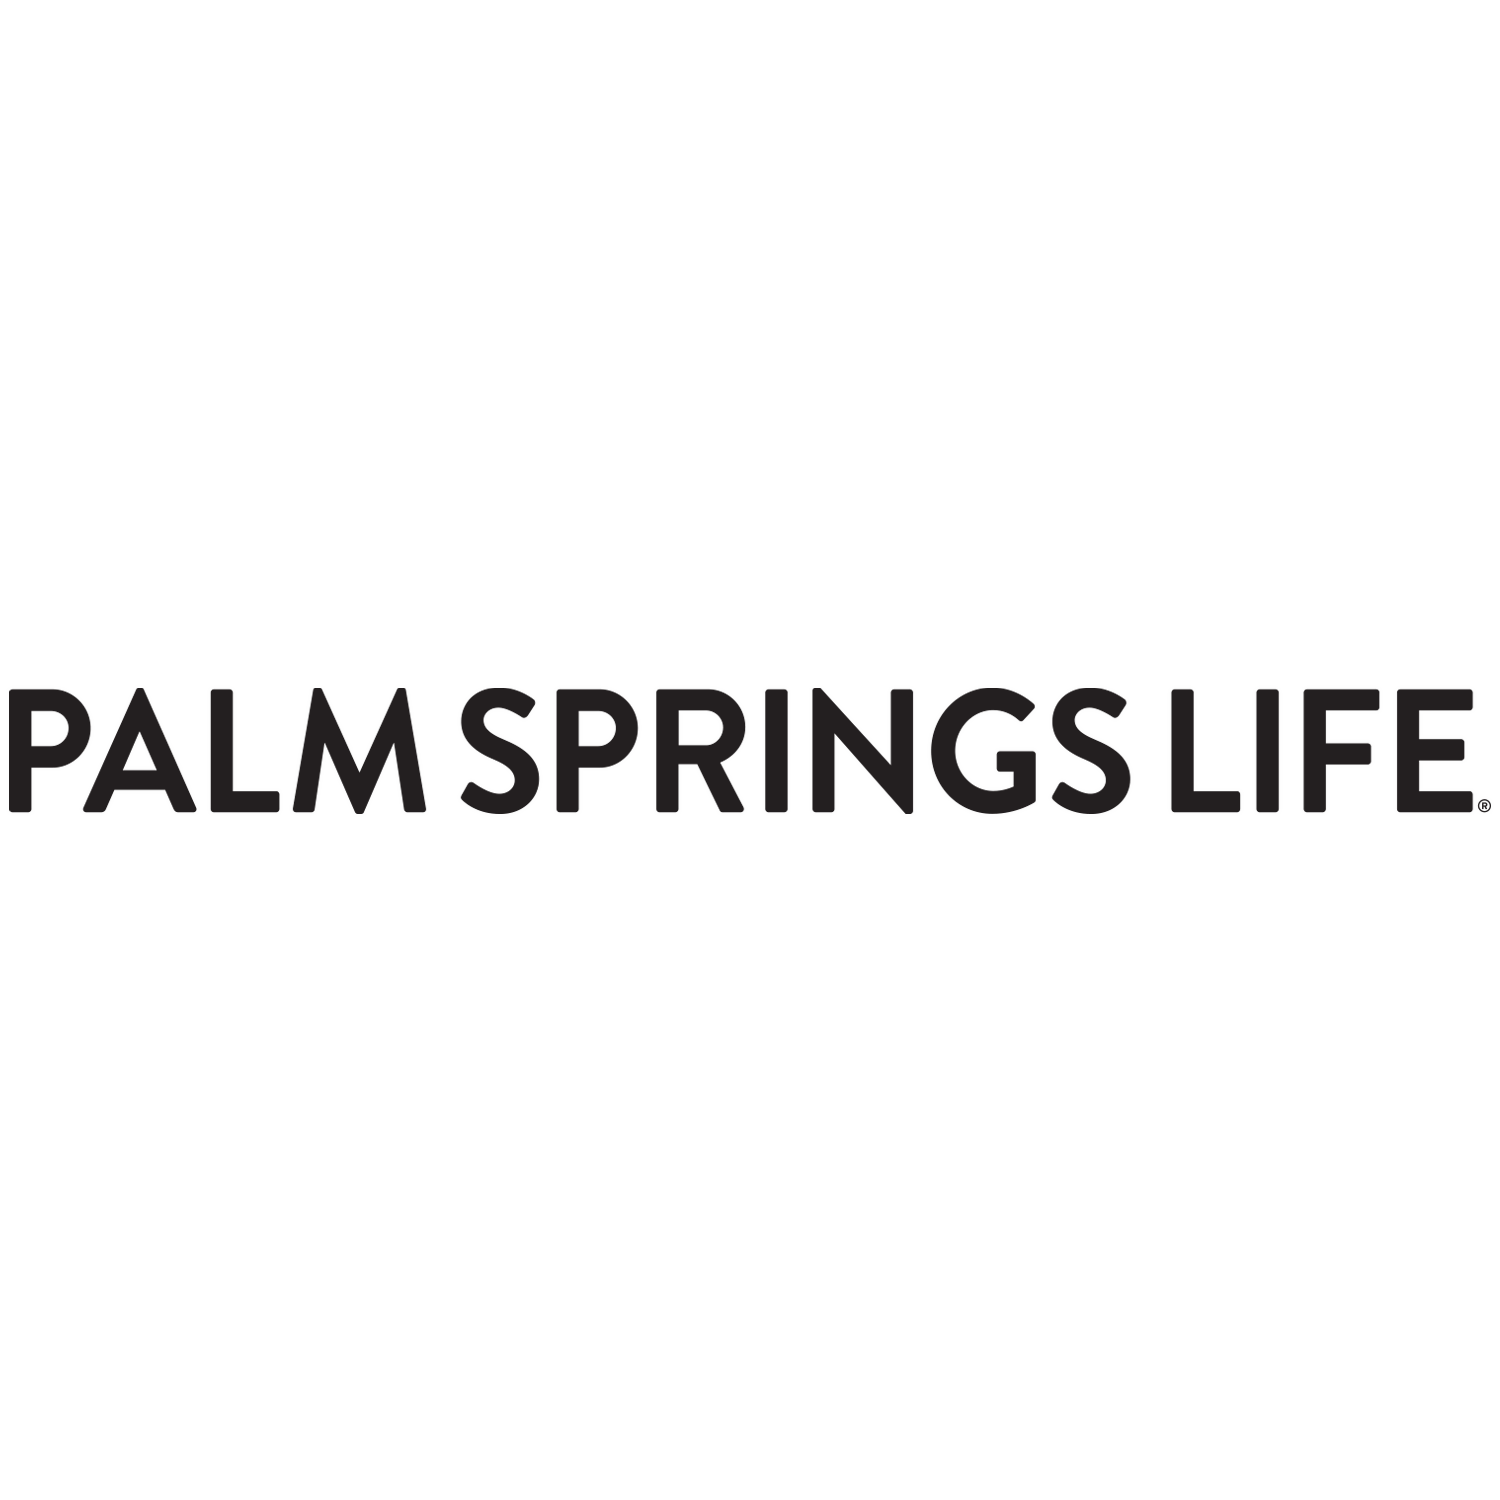 Palm Springs Life.png